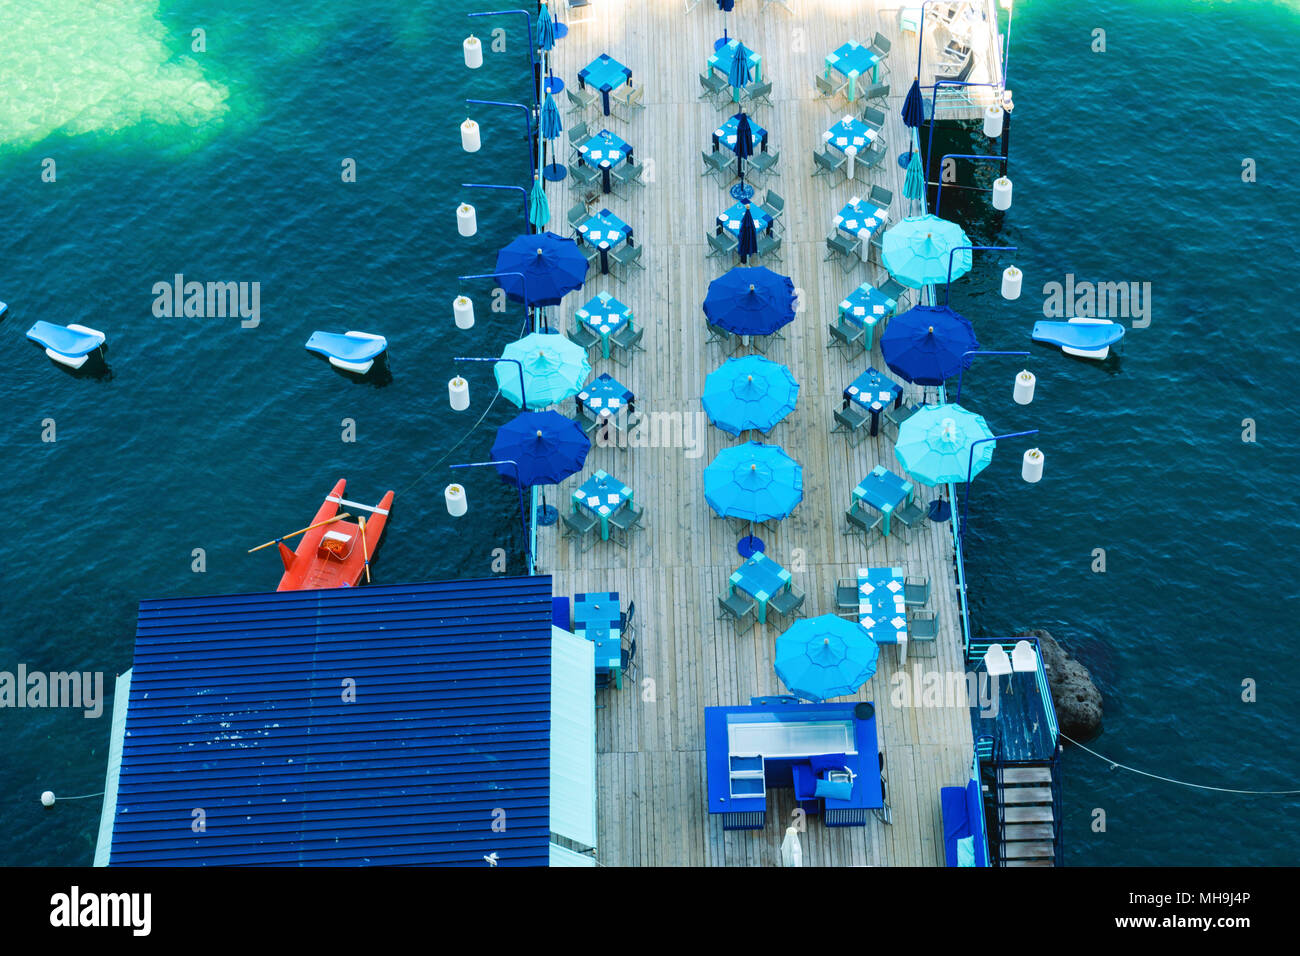 Blue umbrellas on the dock at Sorrento, Italy - Stock Image